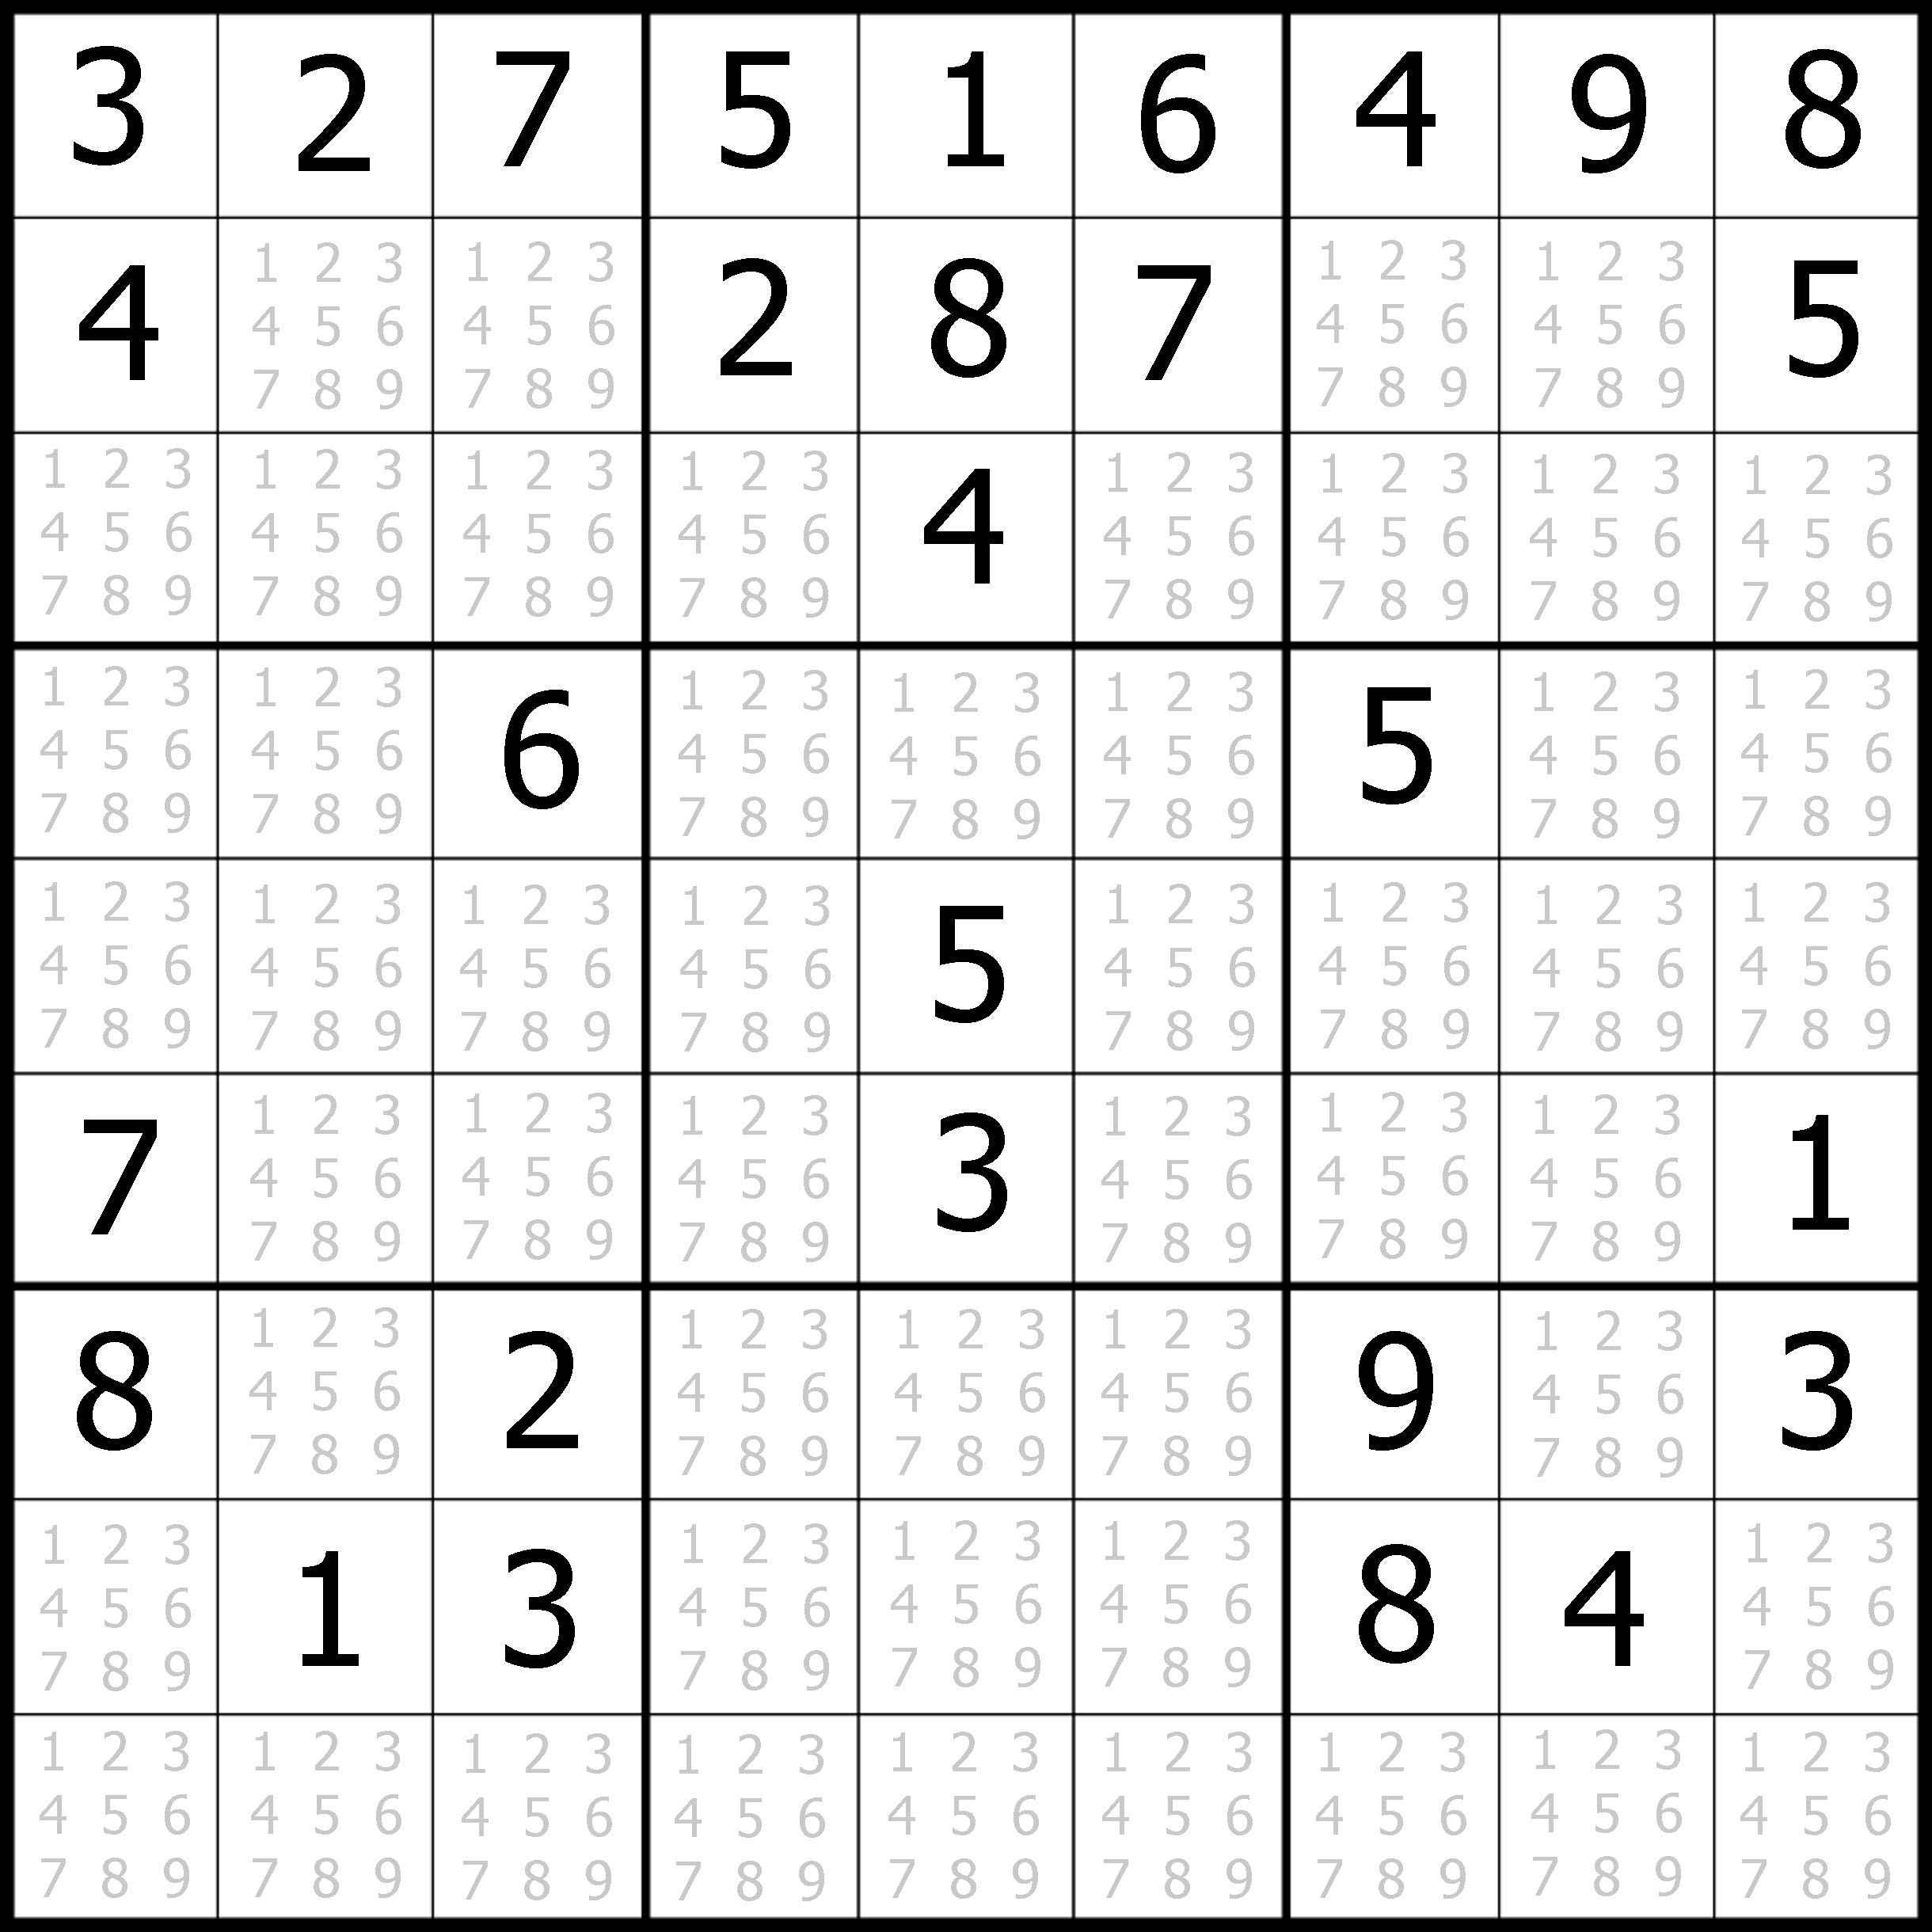 Sudoku Printable | Free, Medium, Printable Sudoku Puzzle #1 | My - Printable Sudoku Puzzles Medium